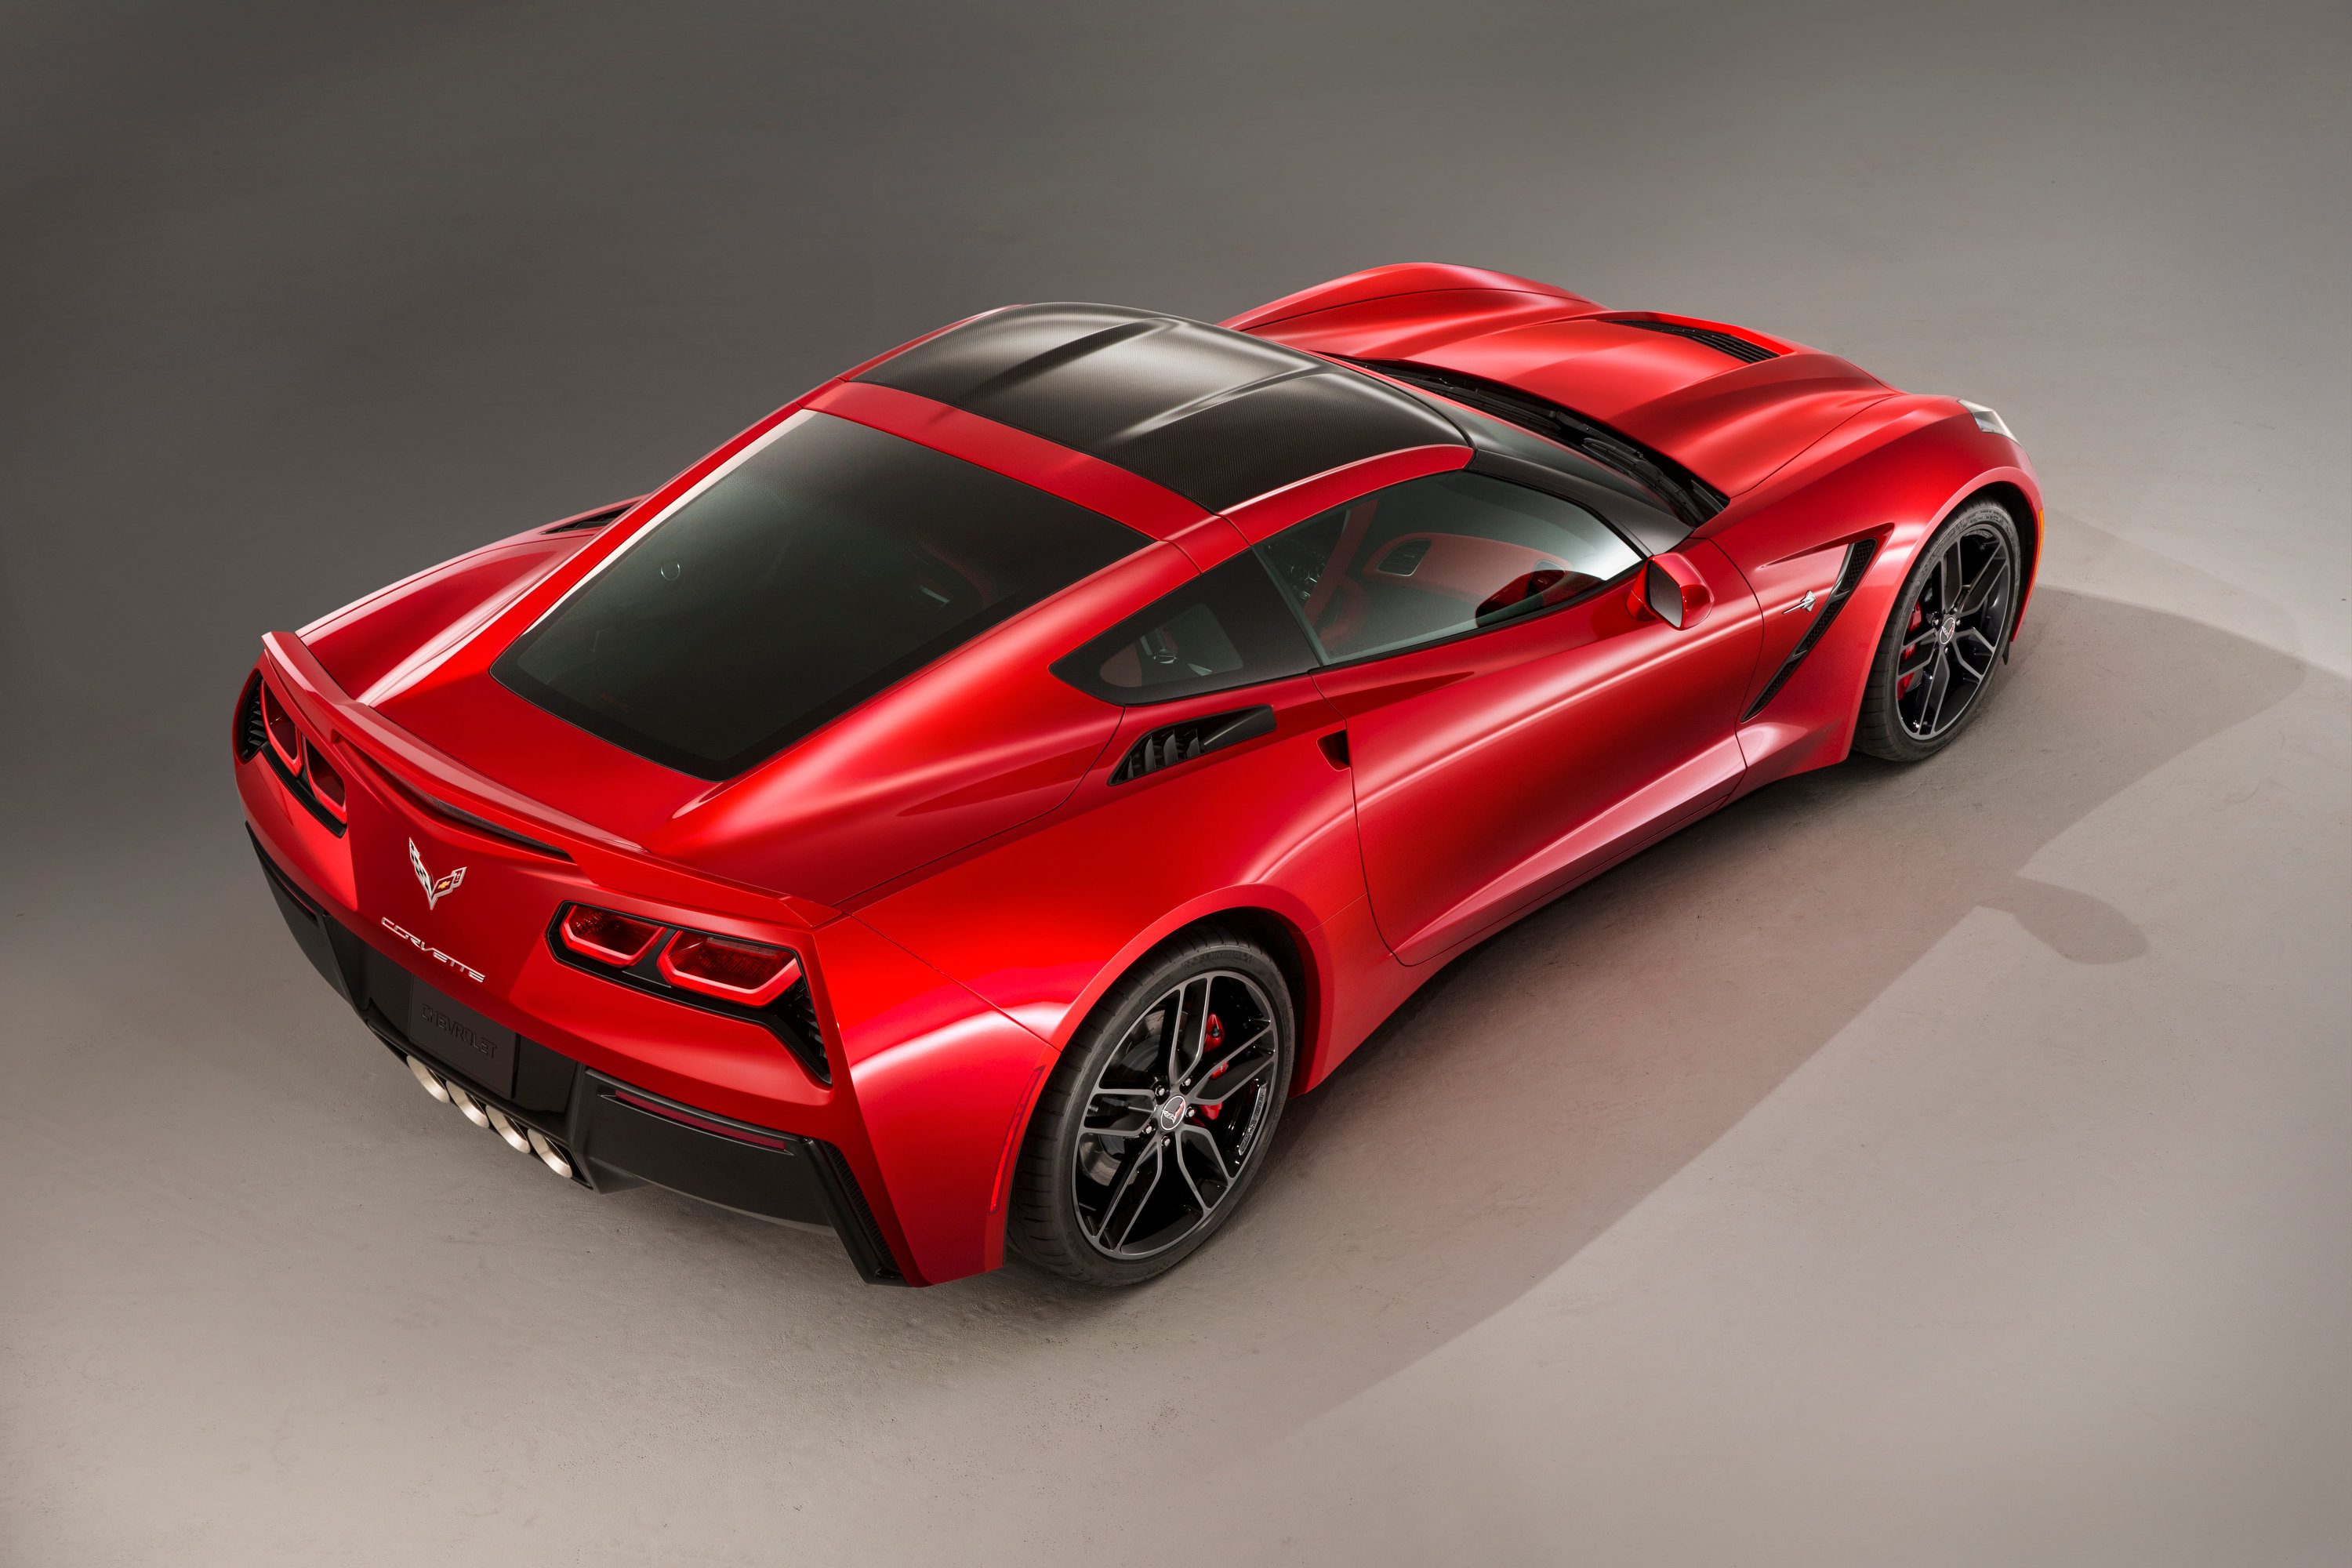 88 entries in Corvette C7 Wallpapers group